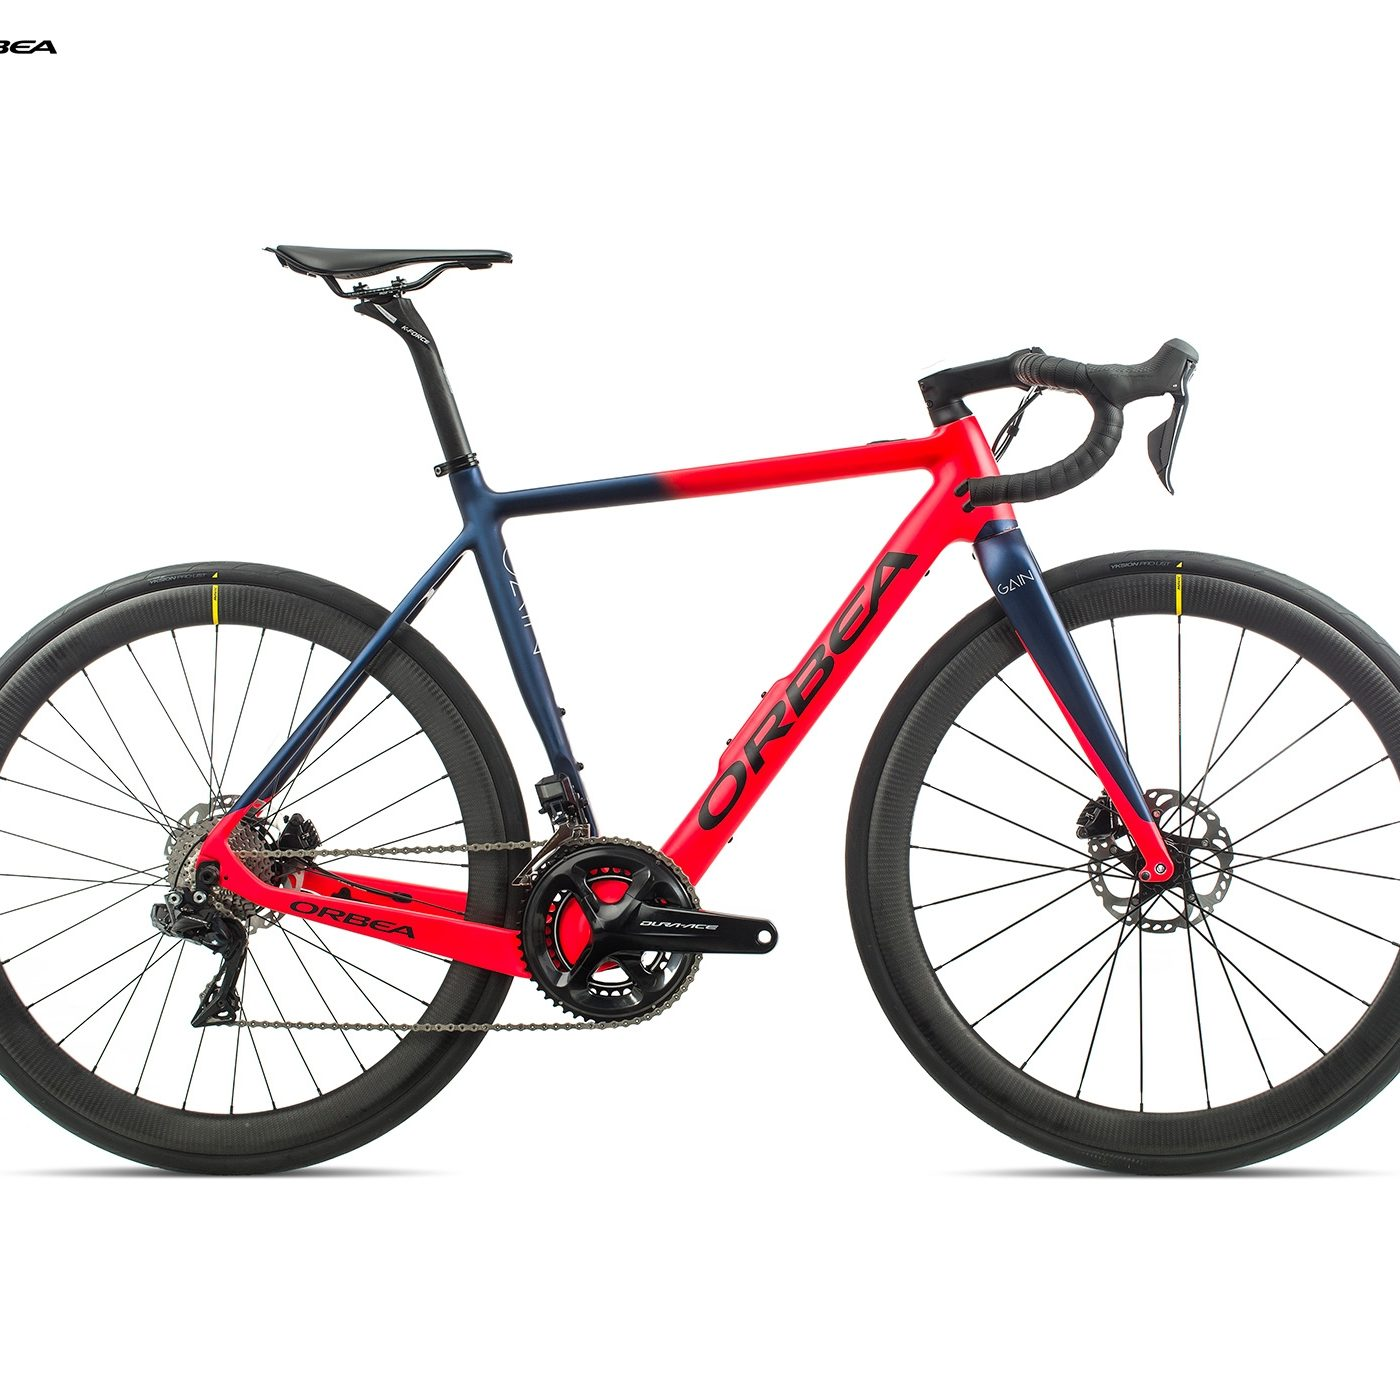 ORBEA GAIN M10i BRIGHT RED / MARINE BLAUW MET (DOF)